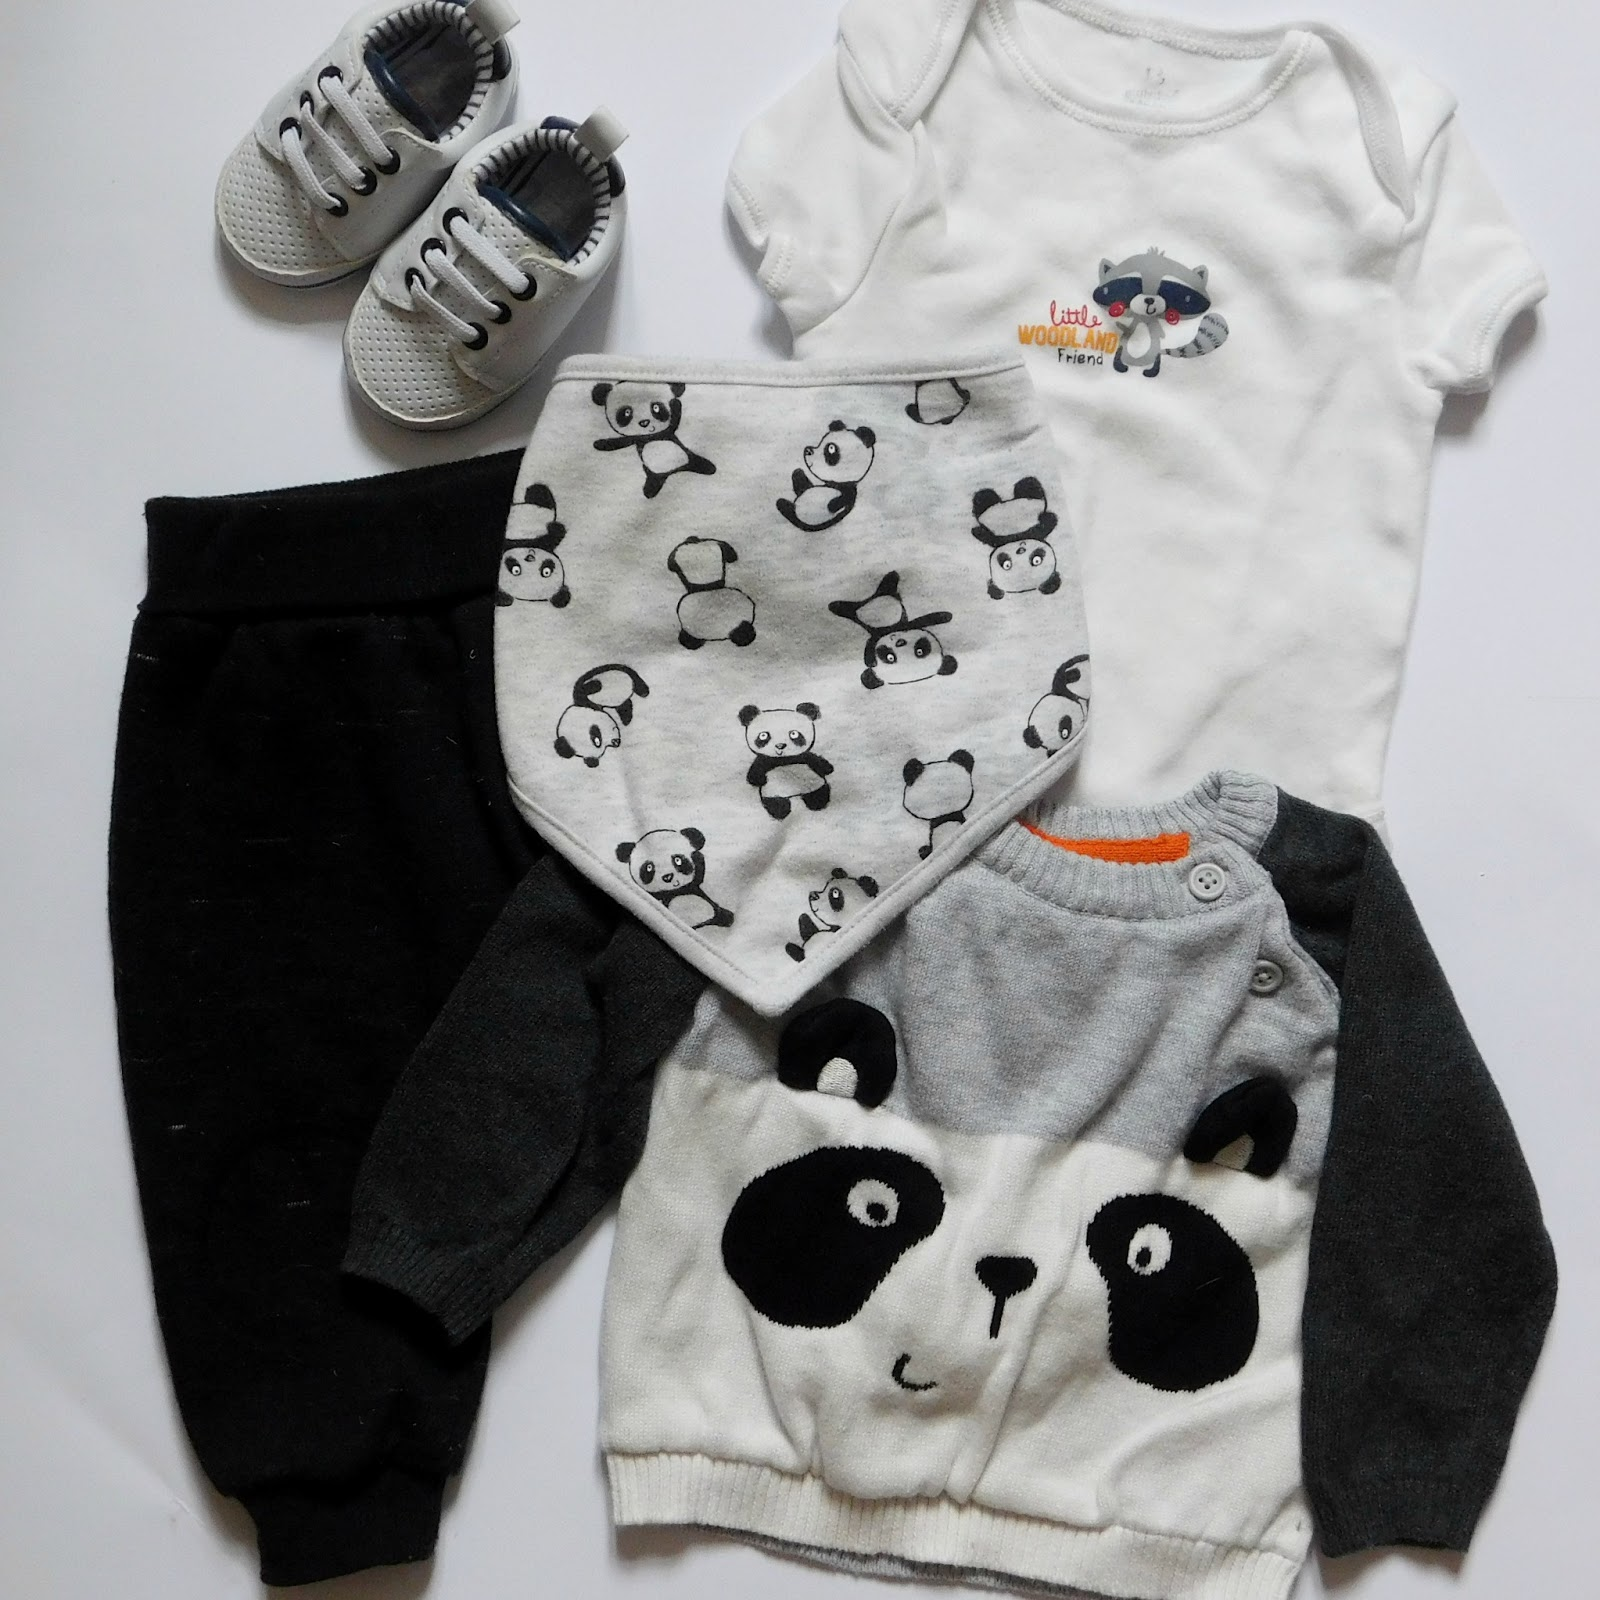 What Mark wore #1 - Panda Party